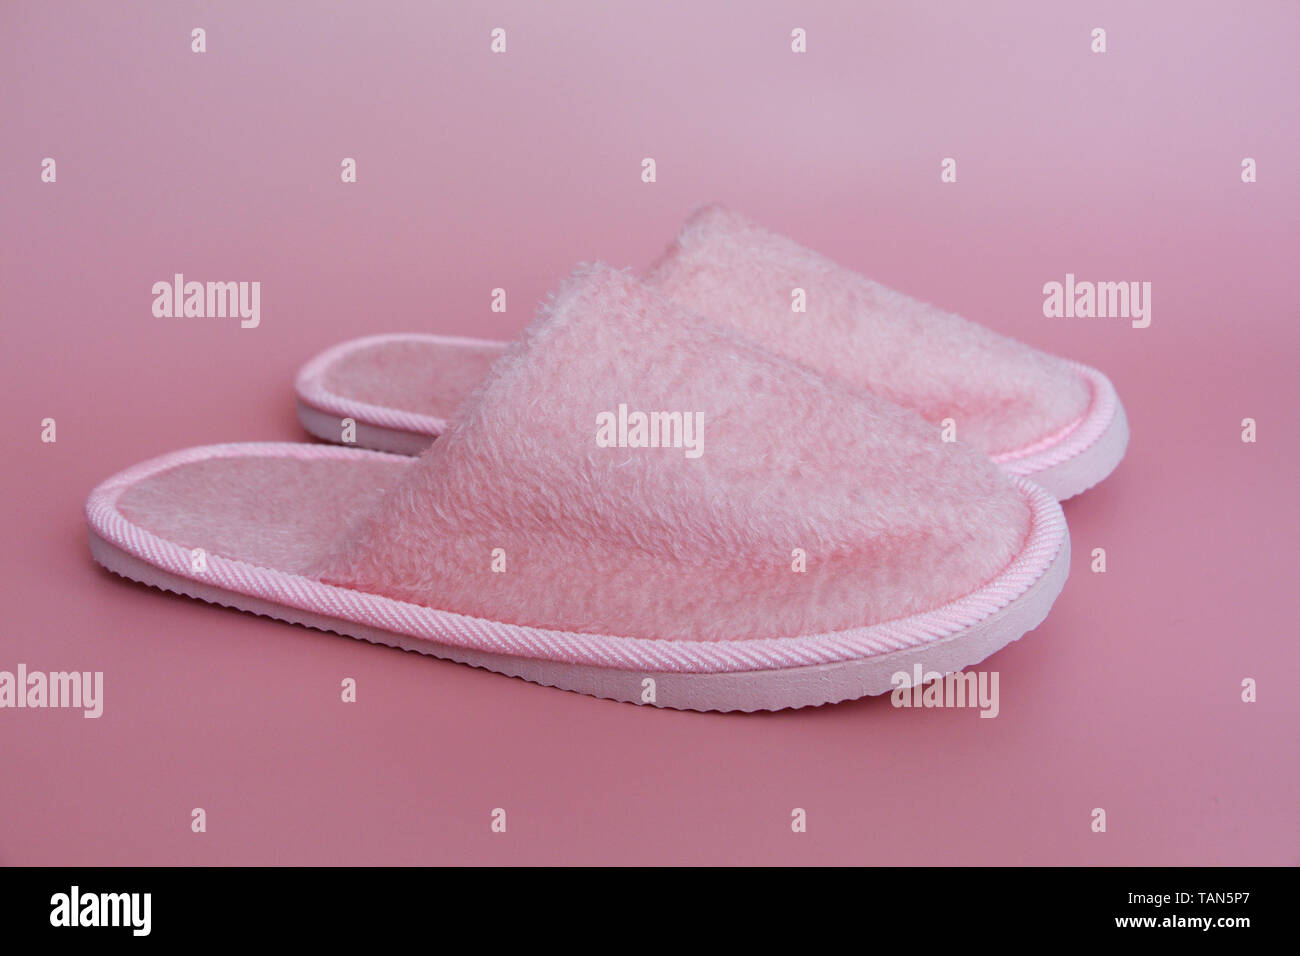 Pink slippers on a pink background. A pair of household terry slippers. Nothing more. - Stock Image